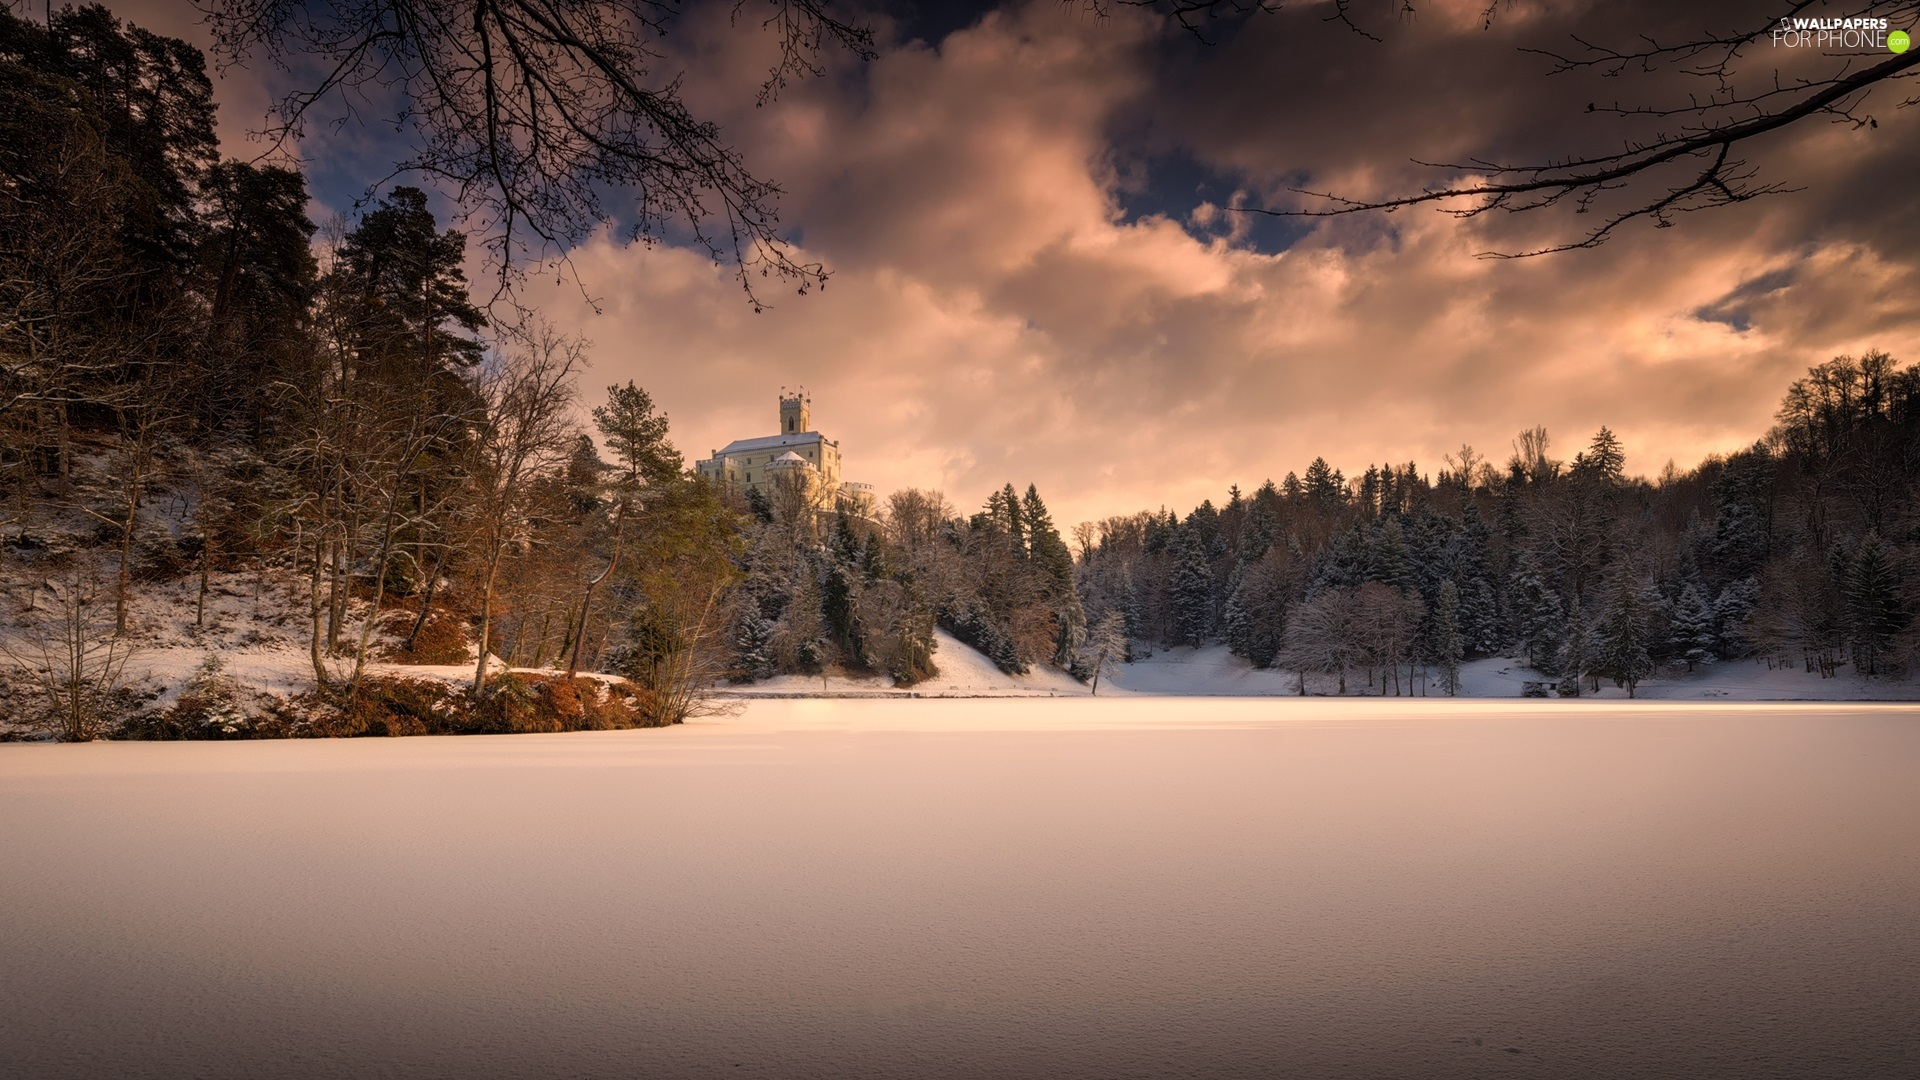 lake, Trakoscan Castle, viewes, winter, Coartia, trees, clouds